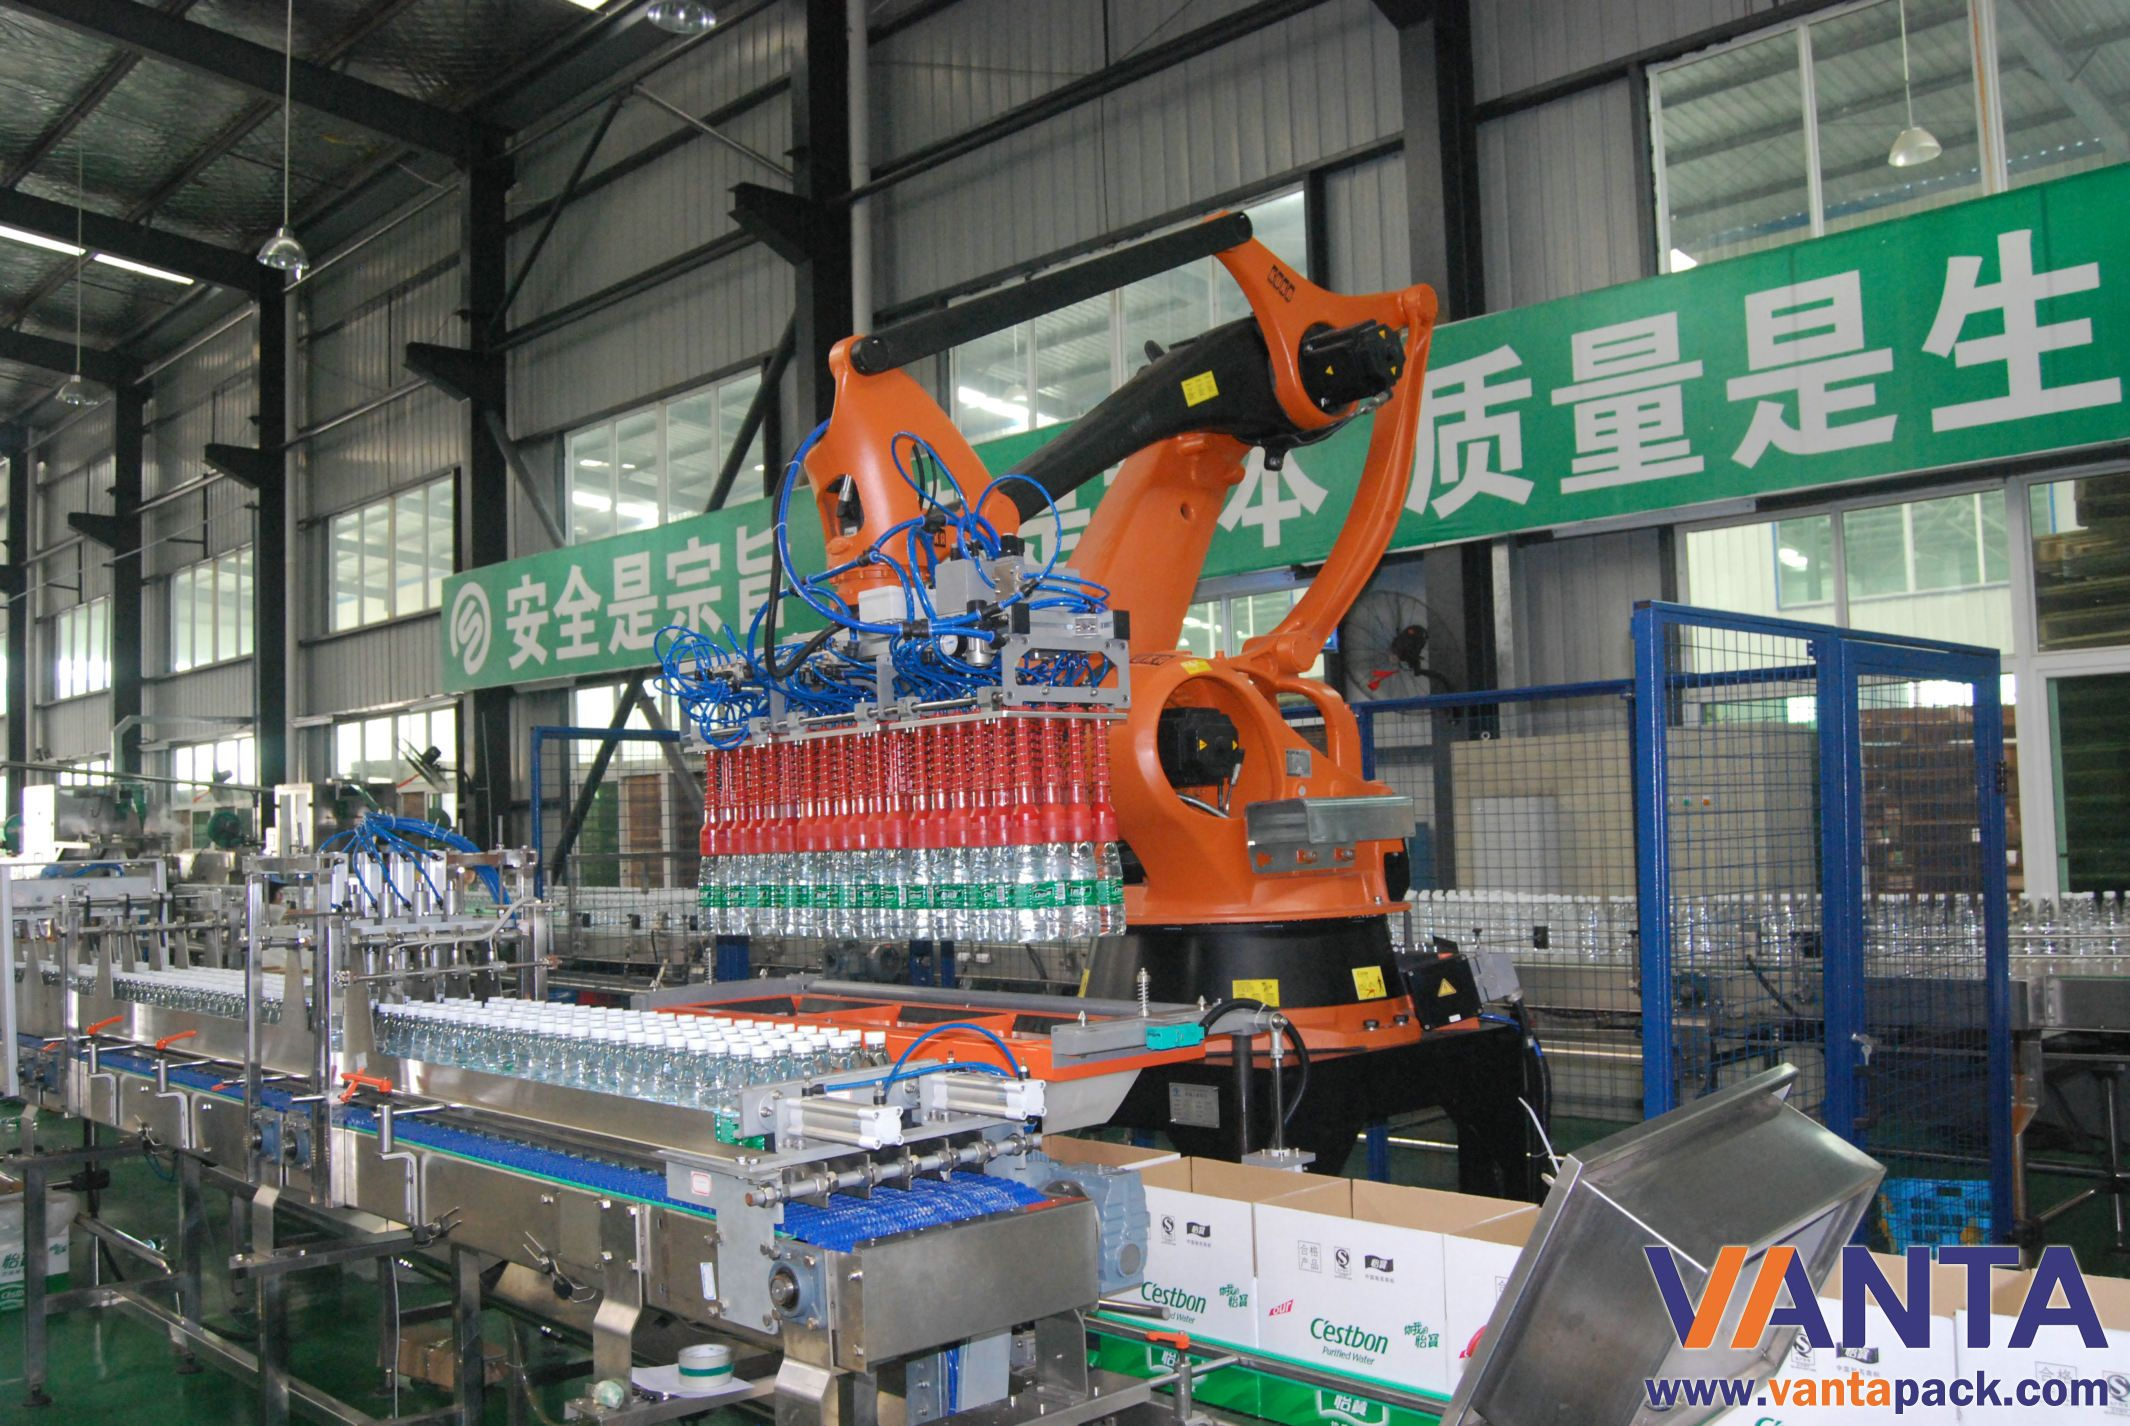 Kuka pick and place robot use for bottle packing line